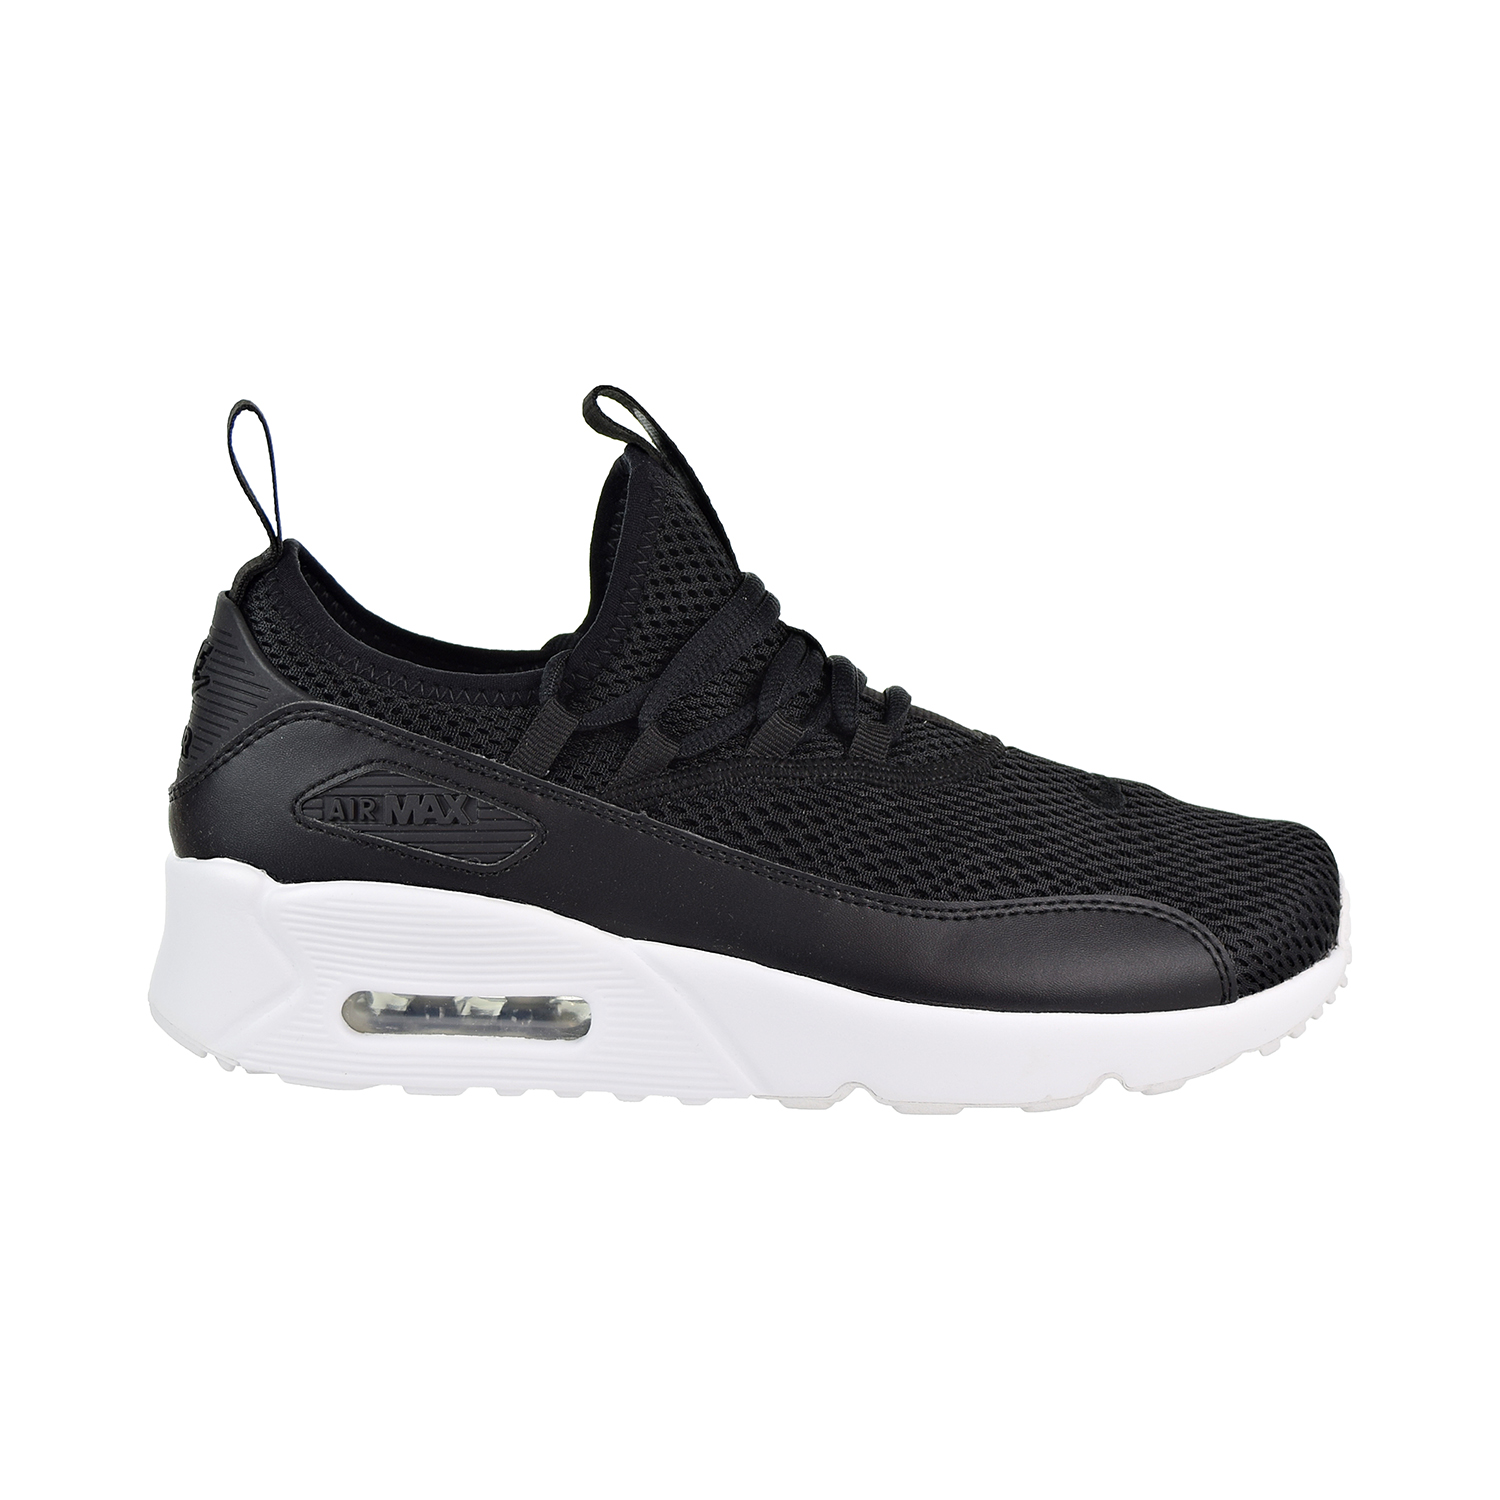 427676c4ca0 Details about Nike Air Max 90 EZ Big Kids  Shoes Black White AH52111-005